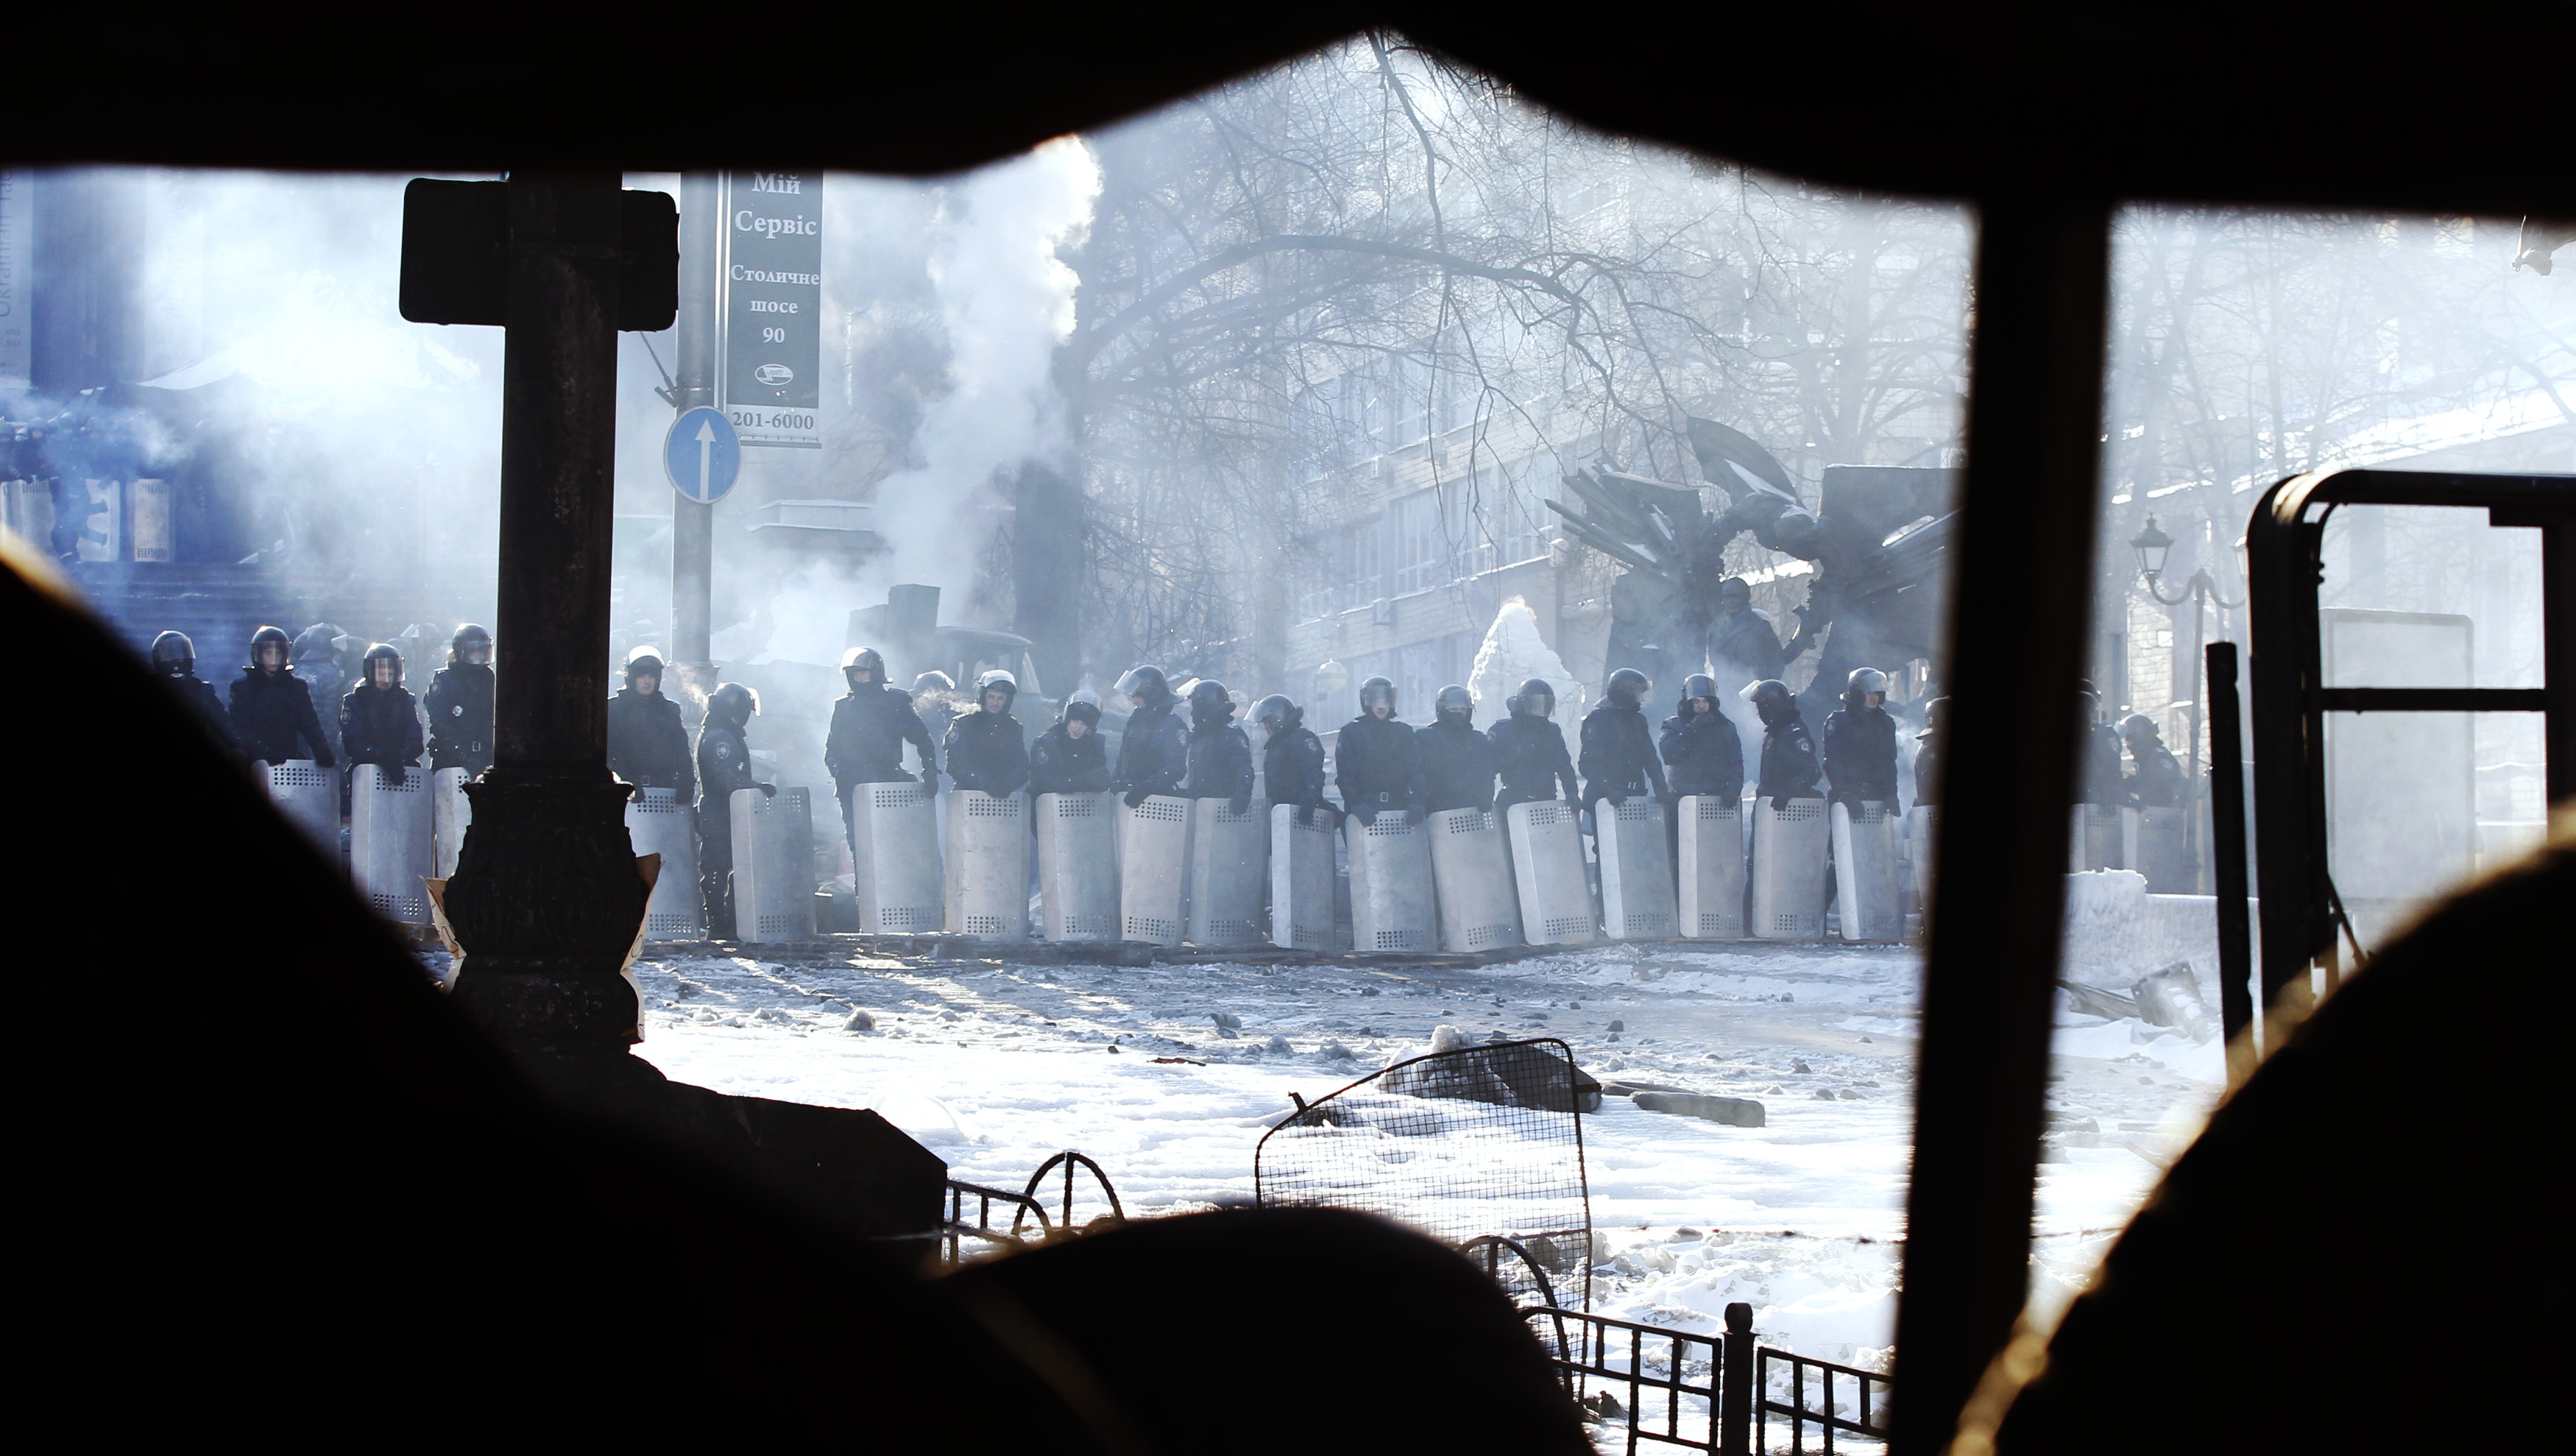 protests in ukraine essay Russian-ukrainian conflict explained by john curran and military personnel quickly descended on protest sites throughout ukraine in order to shut down the opposition first-person essays, features, interviews and q&as about life today عربي.